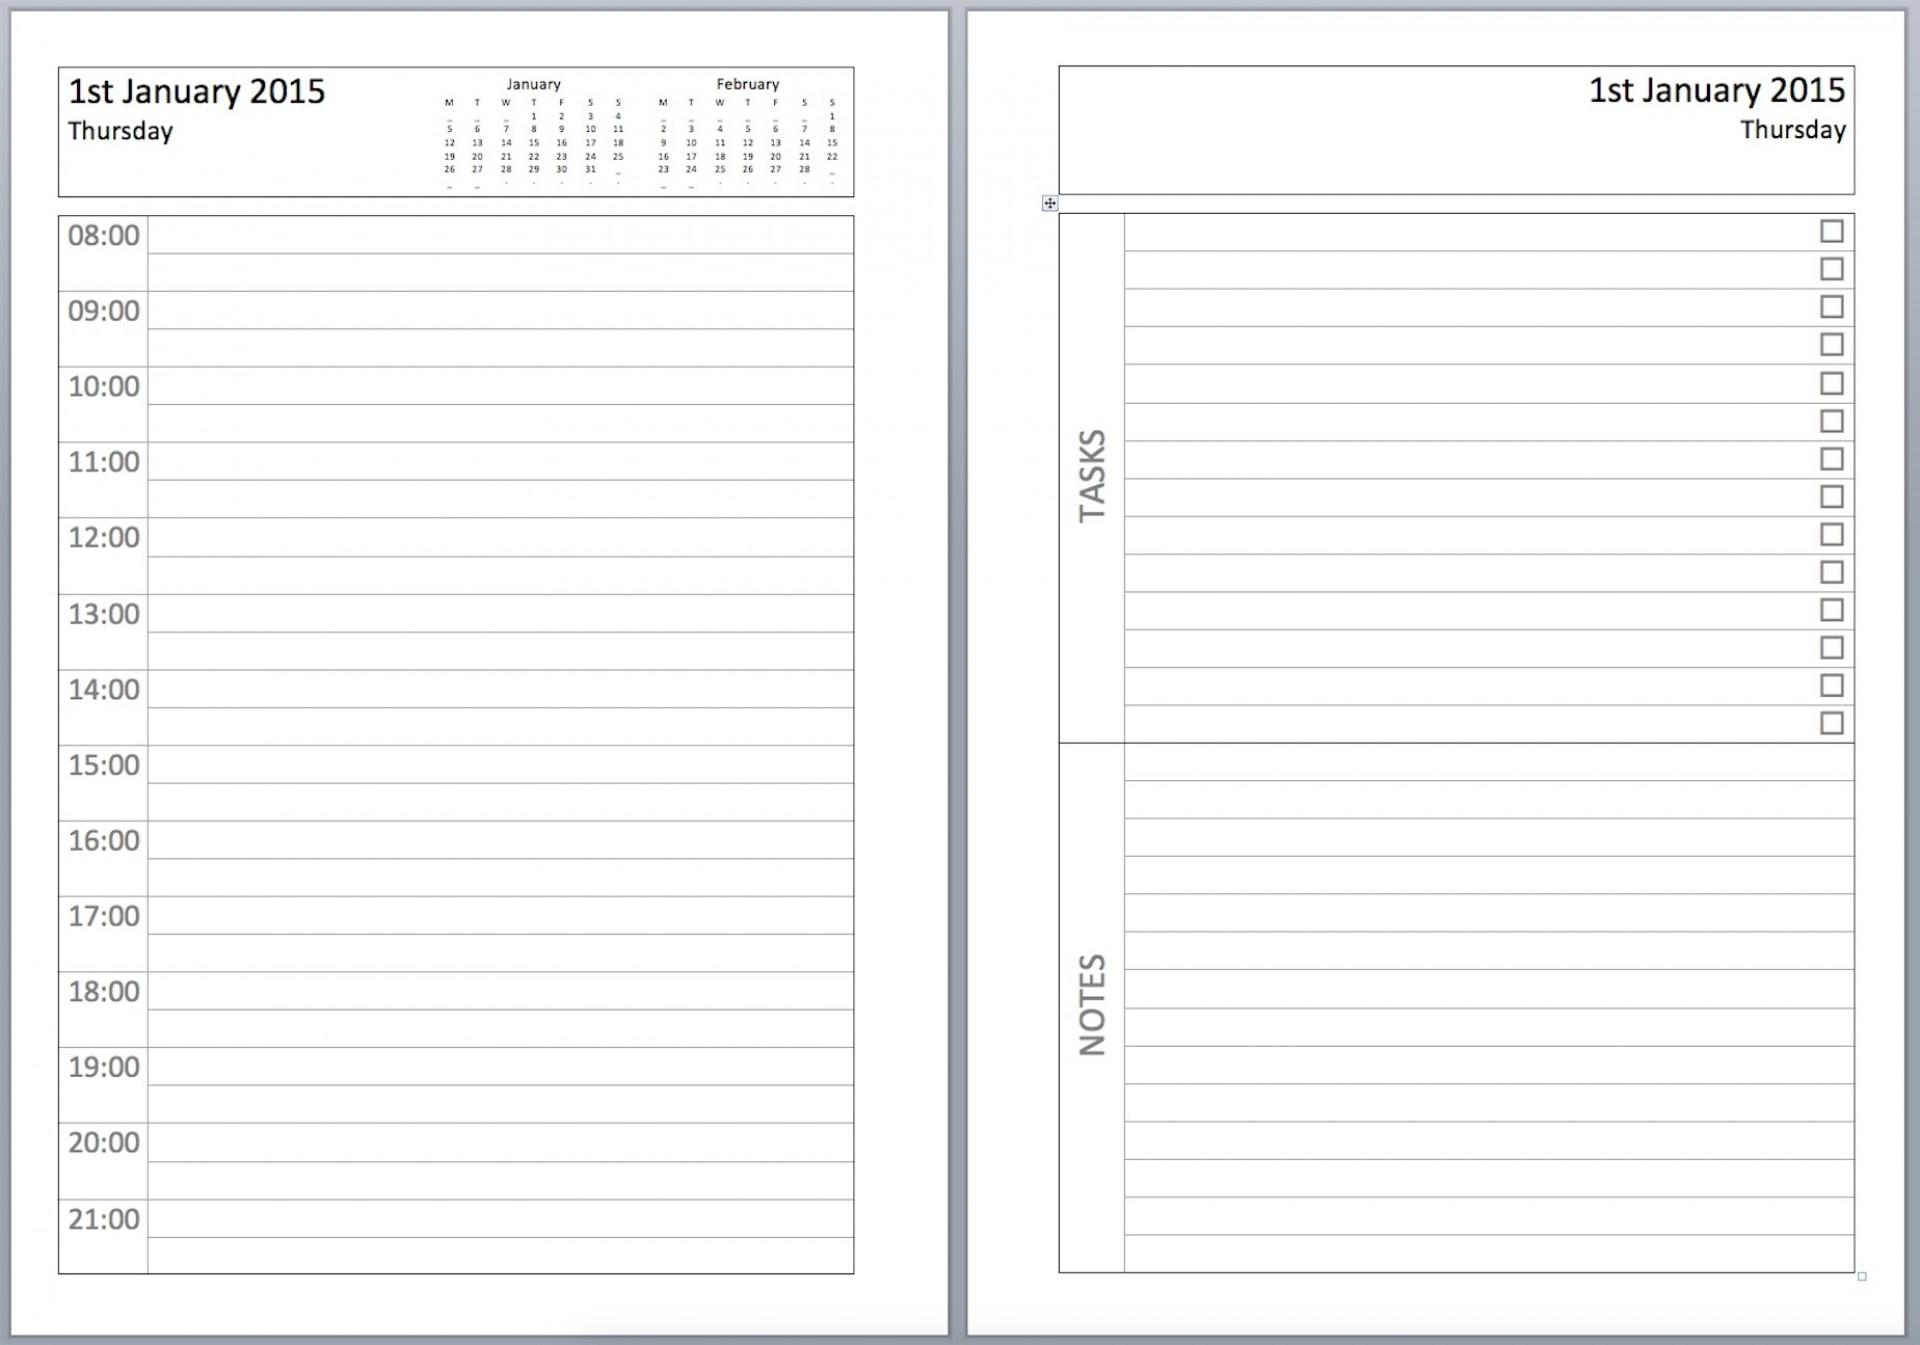 025 Template Ideas Daily Planner Pinterest1 Imposing pertaining to Daily Planner With Time Slots